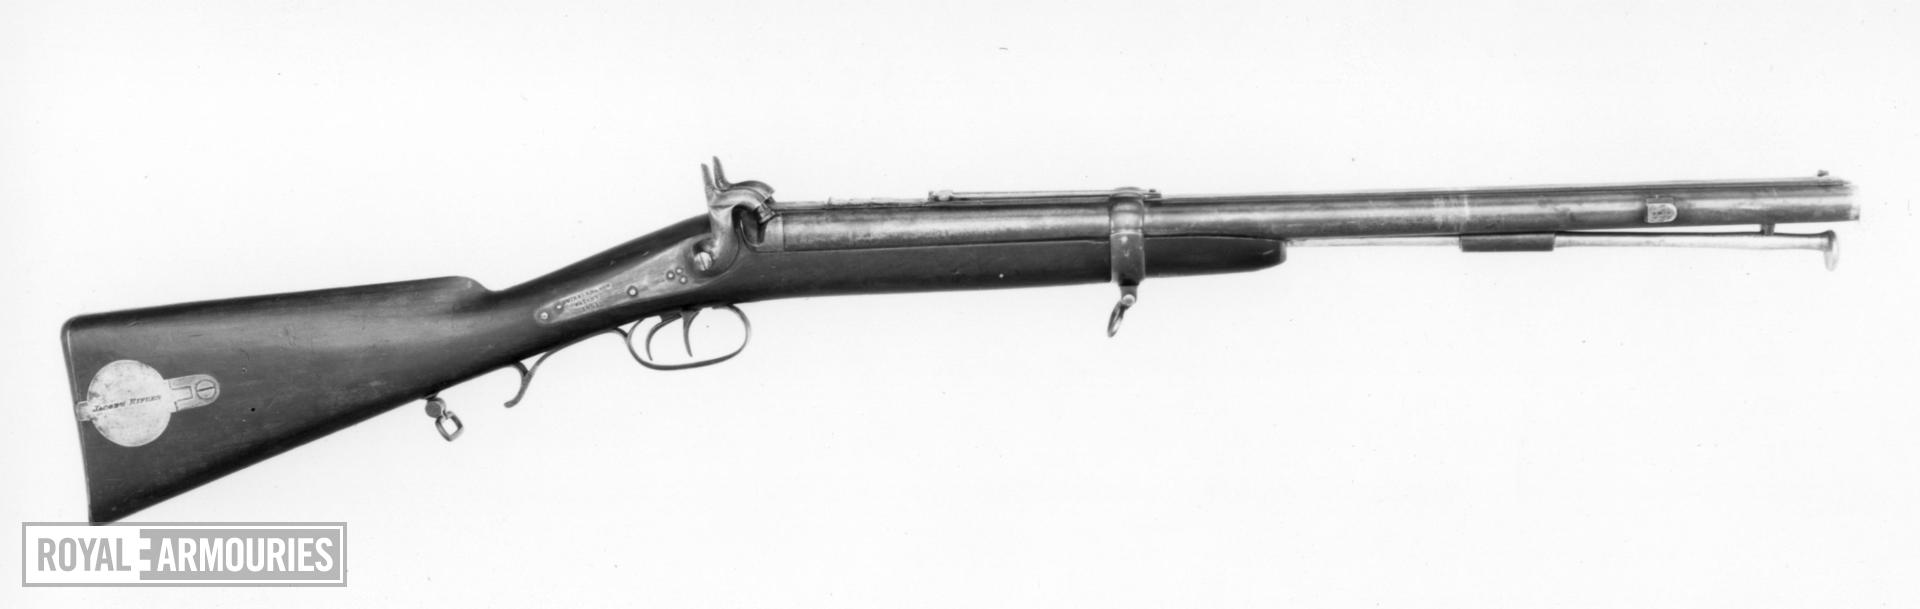 Percussion muzzle-loading double-barrelled carbine - Jacobs Carbine